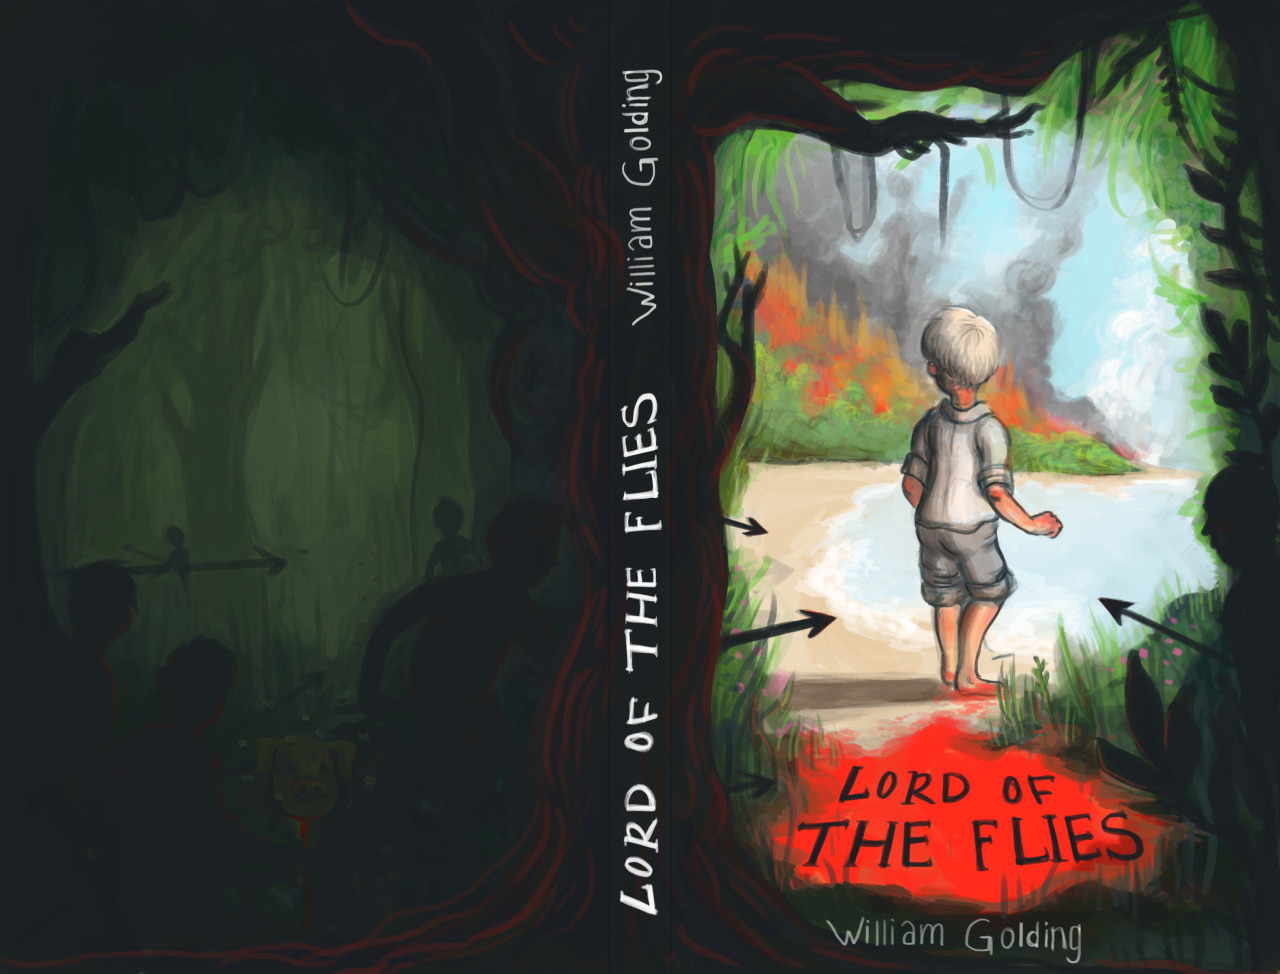 Book cover for Lord of the Flies by author William Golding, for last semester's digital drawing class.